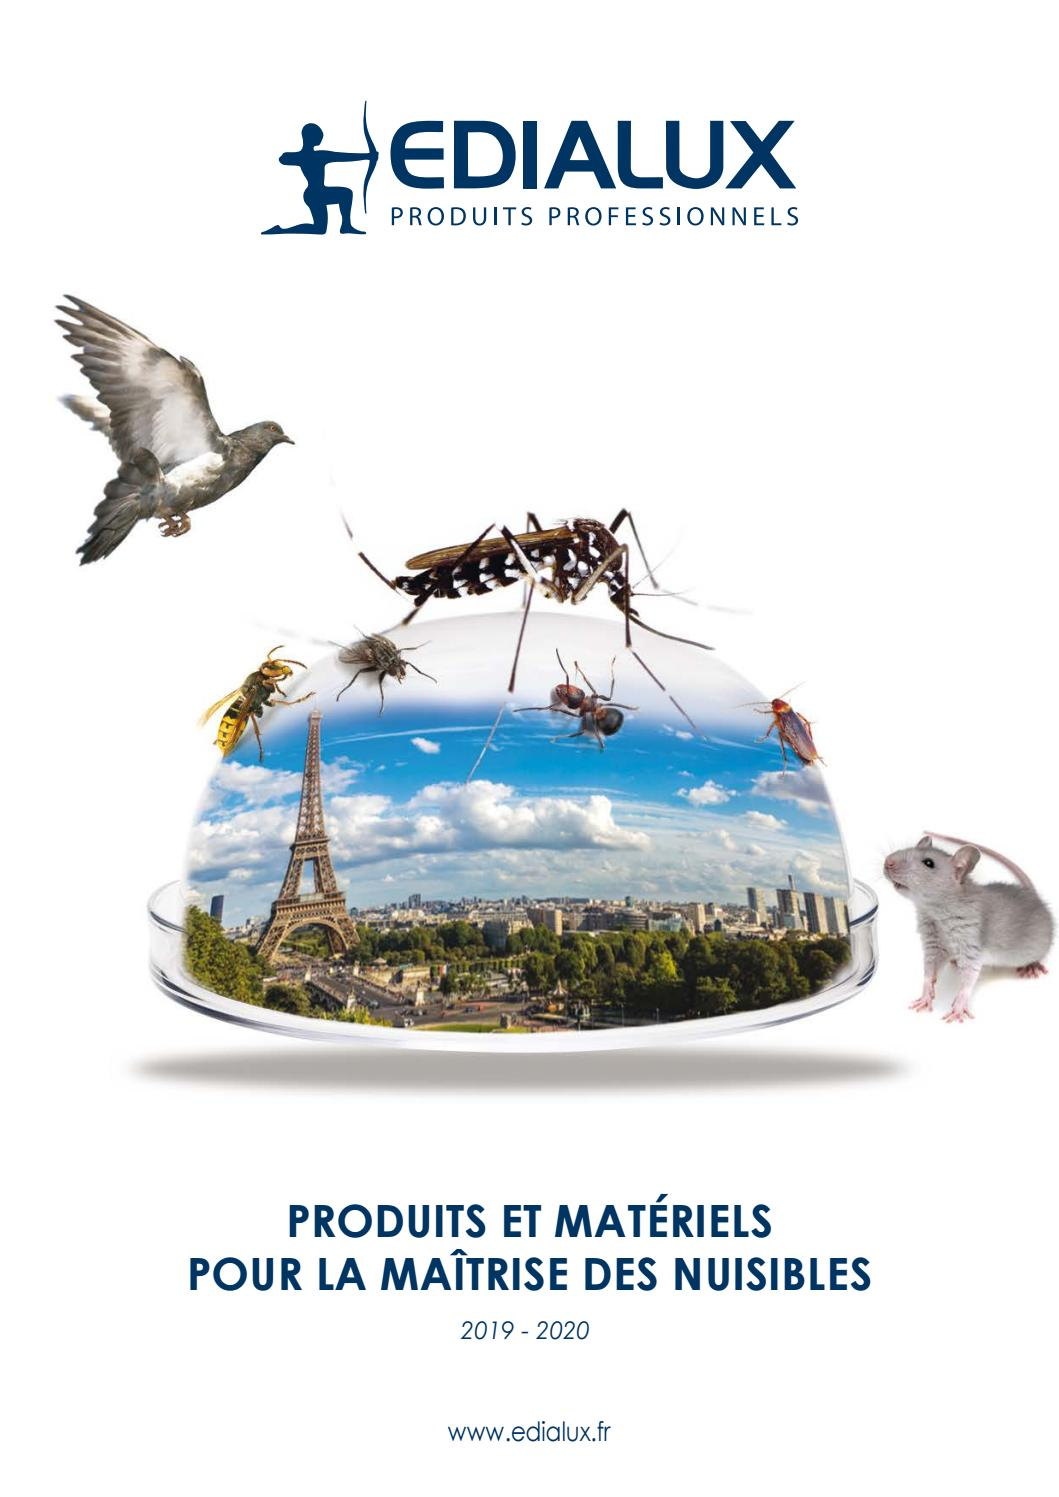 Comment Detruire Efficacement Les Taupes catalogue edialux 2019-20edialux - issuu